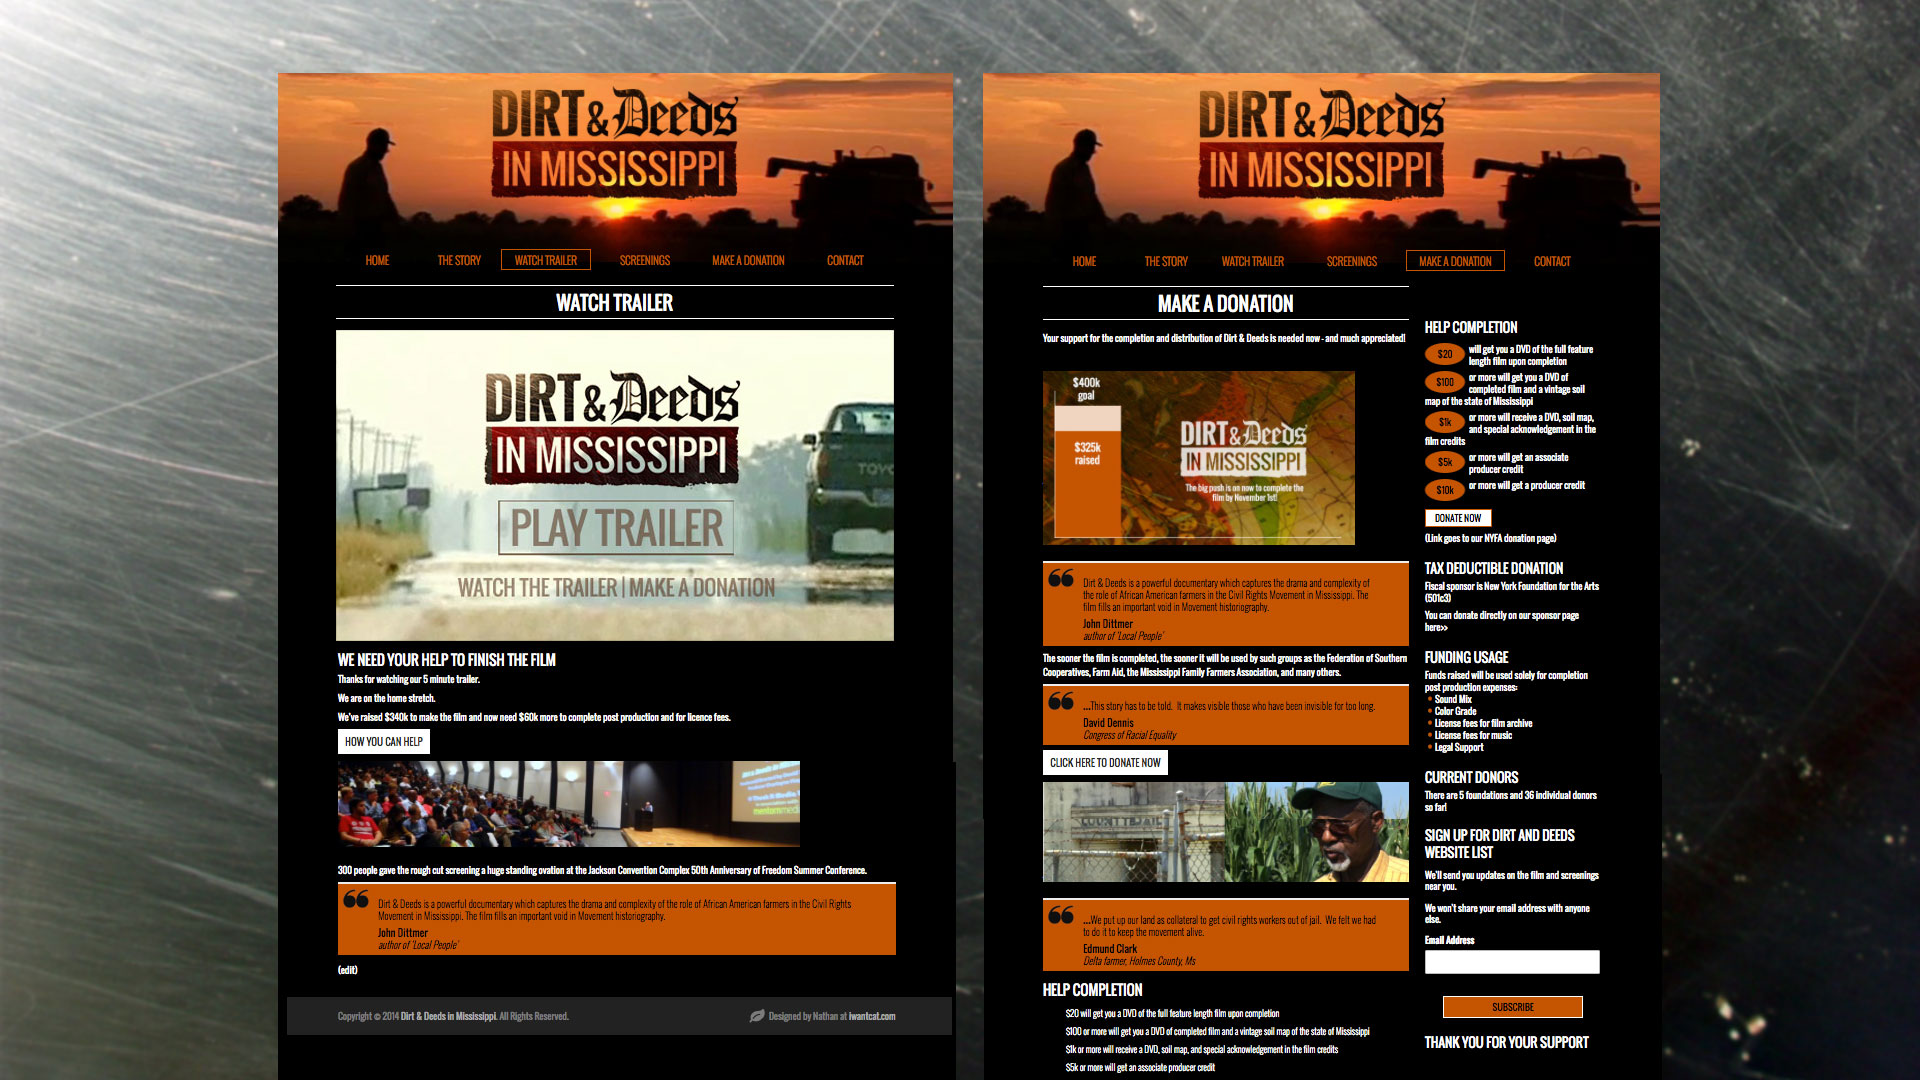 Dirt and Deeds in Missississippi website